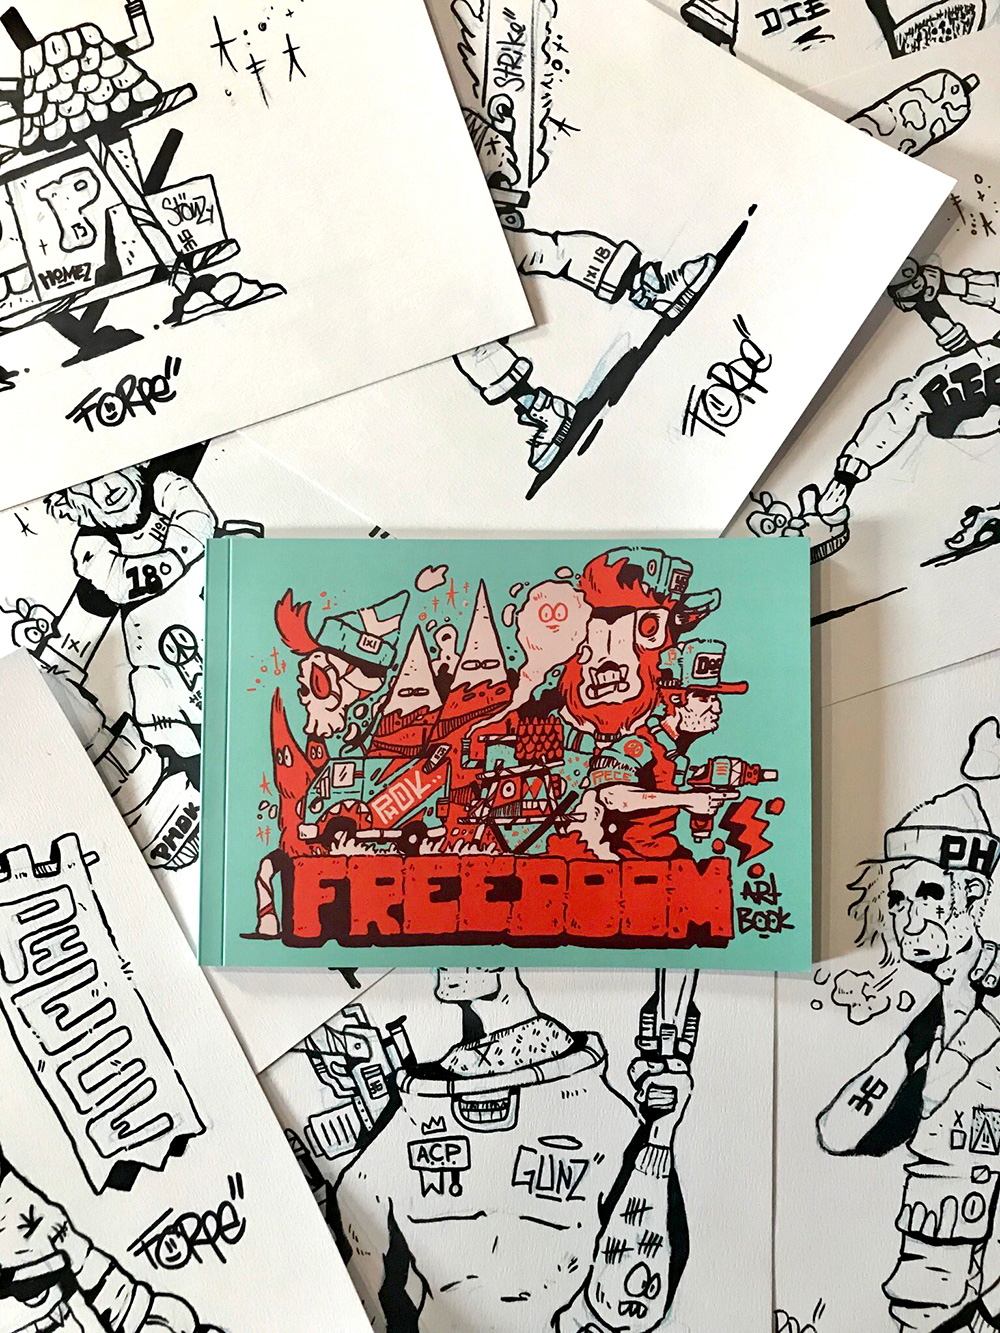 FREEdoom Artbook   A 42 page FREEDOOM art book.   This mighty book contains all the work from the  Blue period  but recoloured in the mighty technicolour hue known as green.  Learn the lingo from the Freedoom realm and discover Forpes character designs that are being used in his new comic Erol Vs Evil.   Each book is signed 1x30 & comes with stickers plus a one off artist study (the black inks shown in the background. Hurry there are only 30!